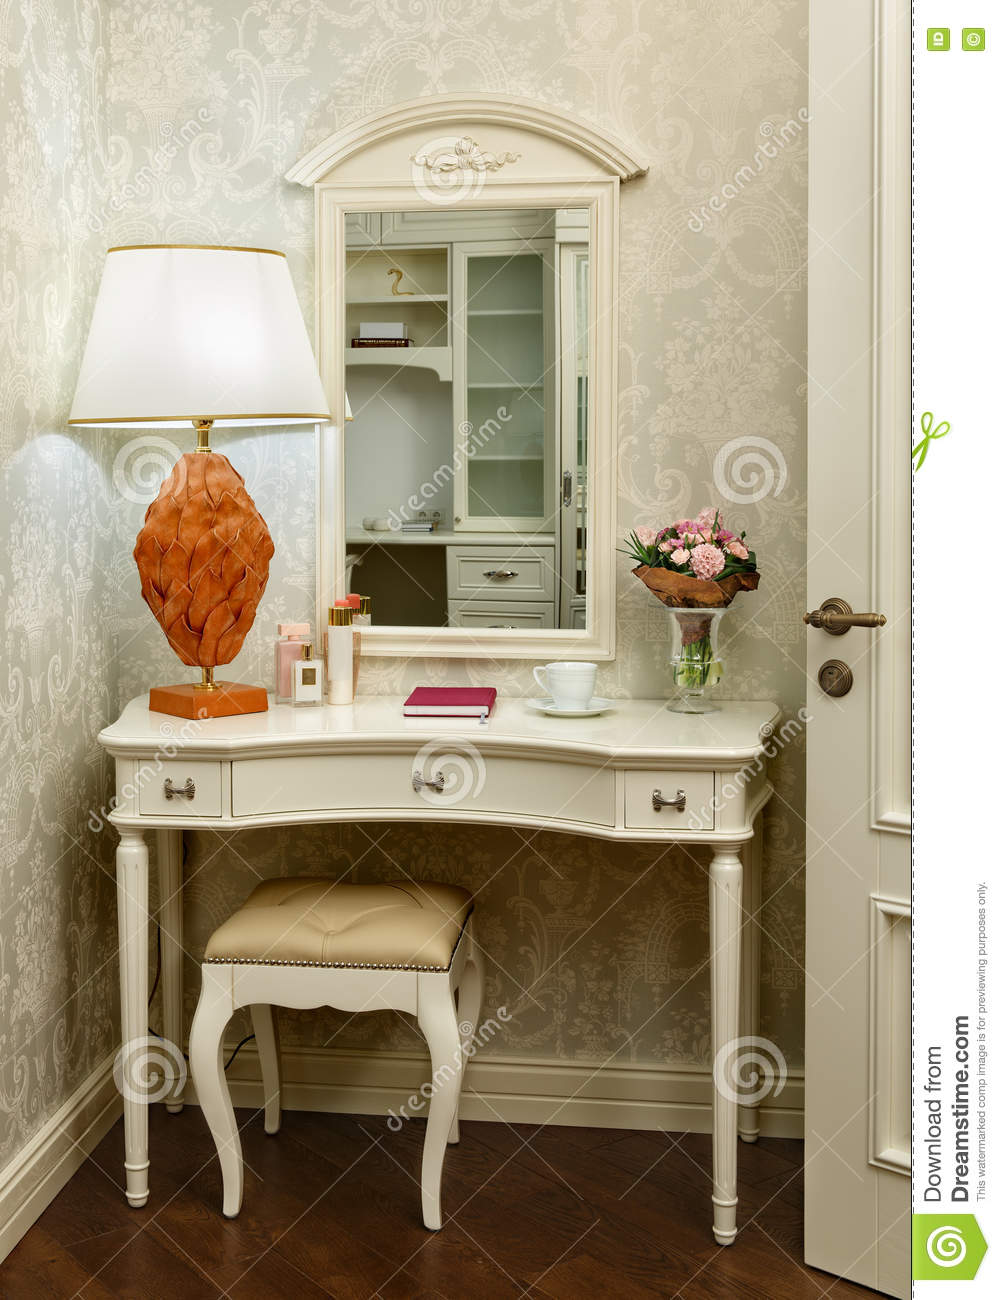 Download Interior Room With Dressing Table, Stool And Table Lamp Stock  Photo   Image Of